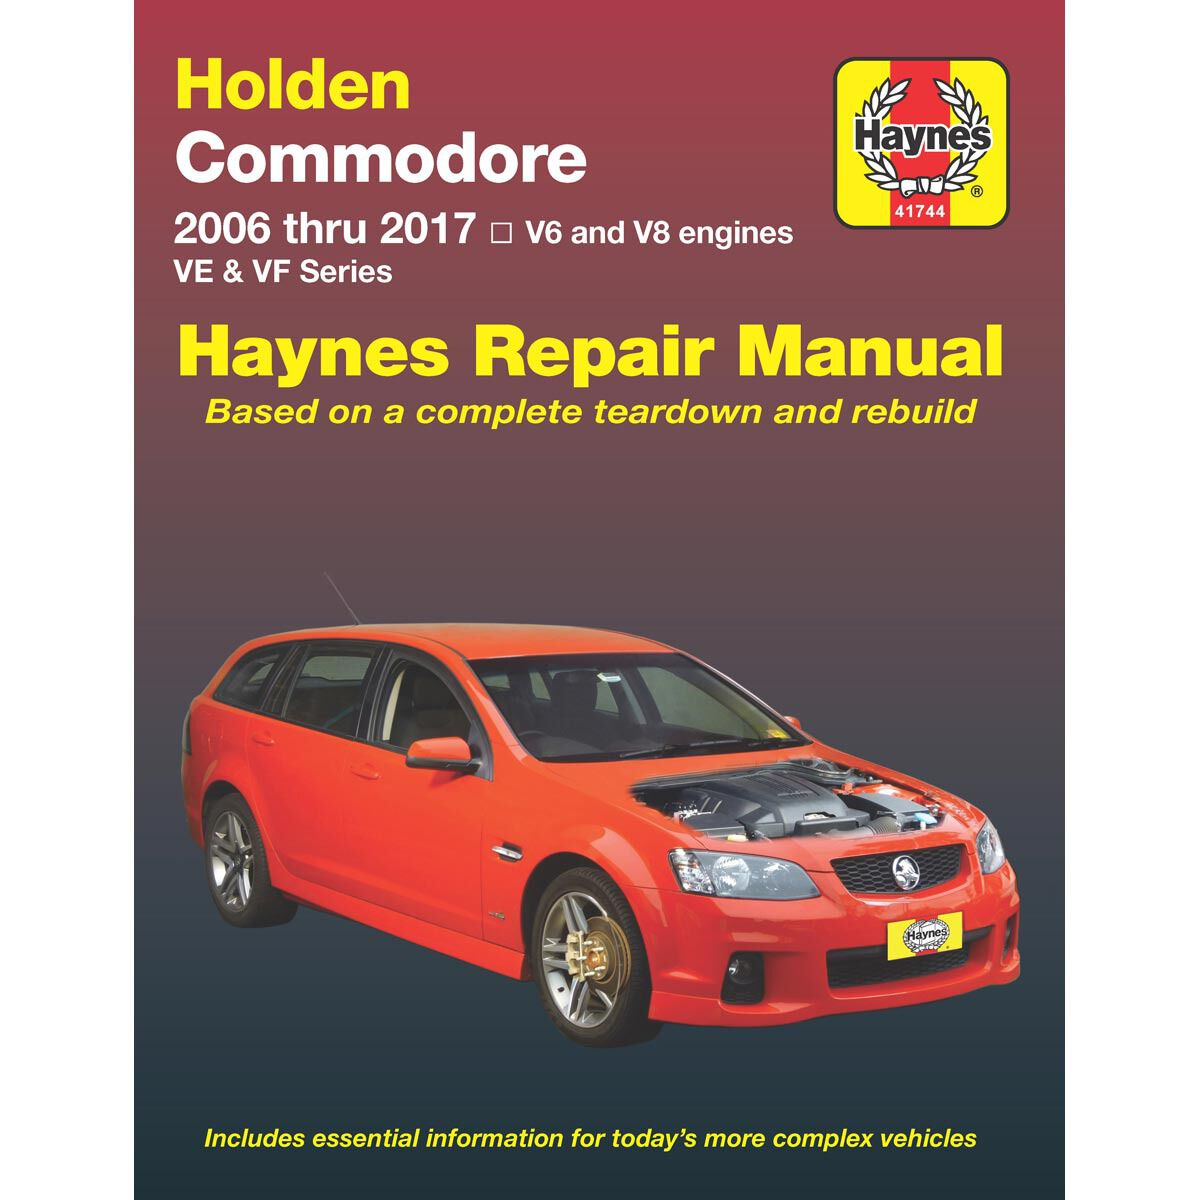 car manual for holden commodore ve vf supercheap auto rh supercheapauto com au holden cruze car manual holden captiva car manual